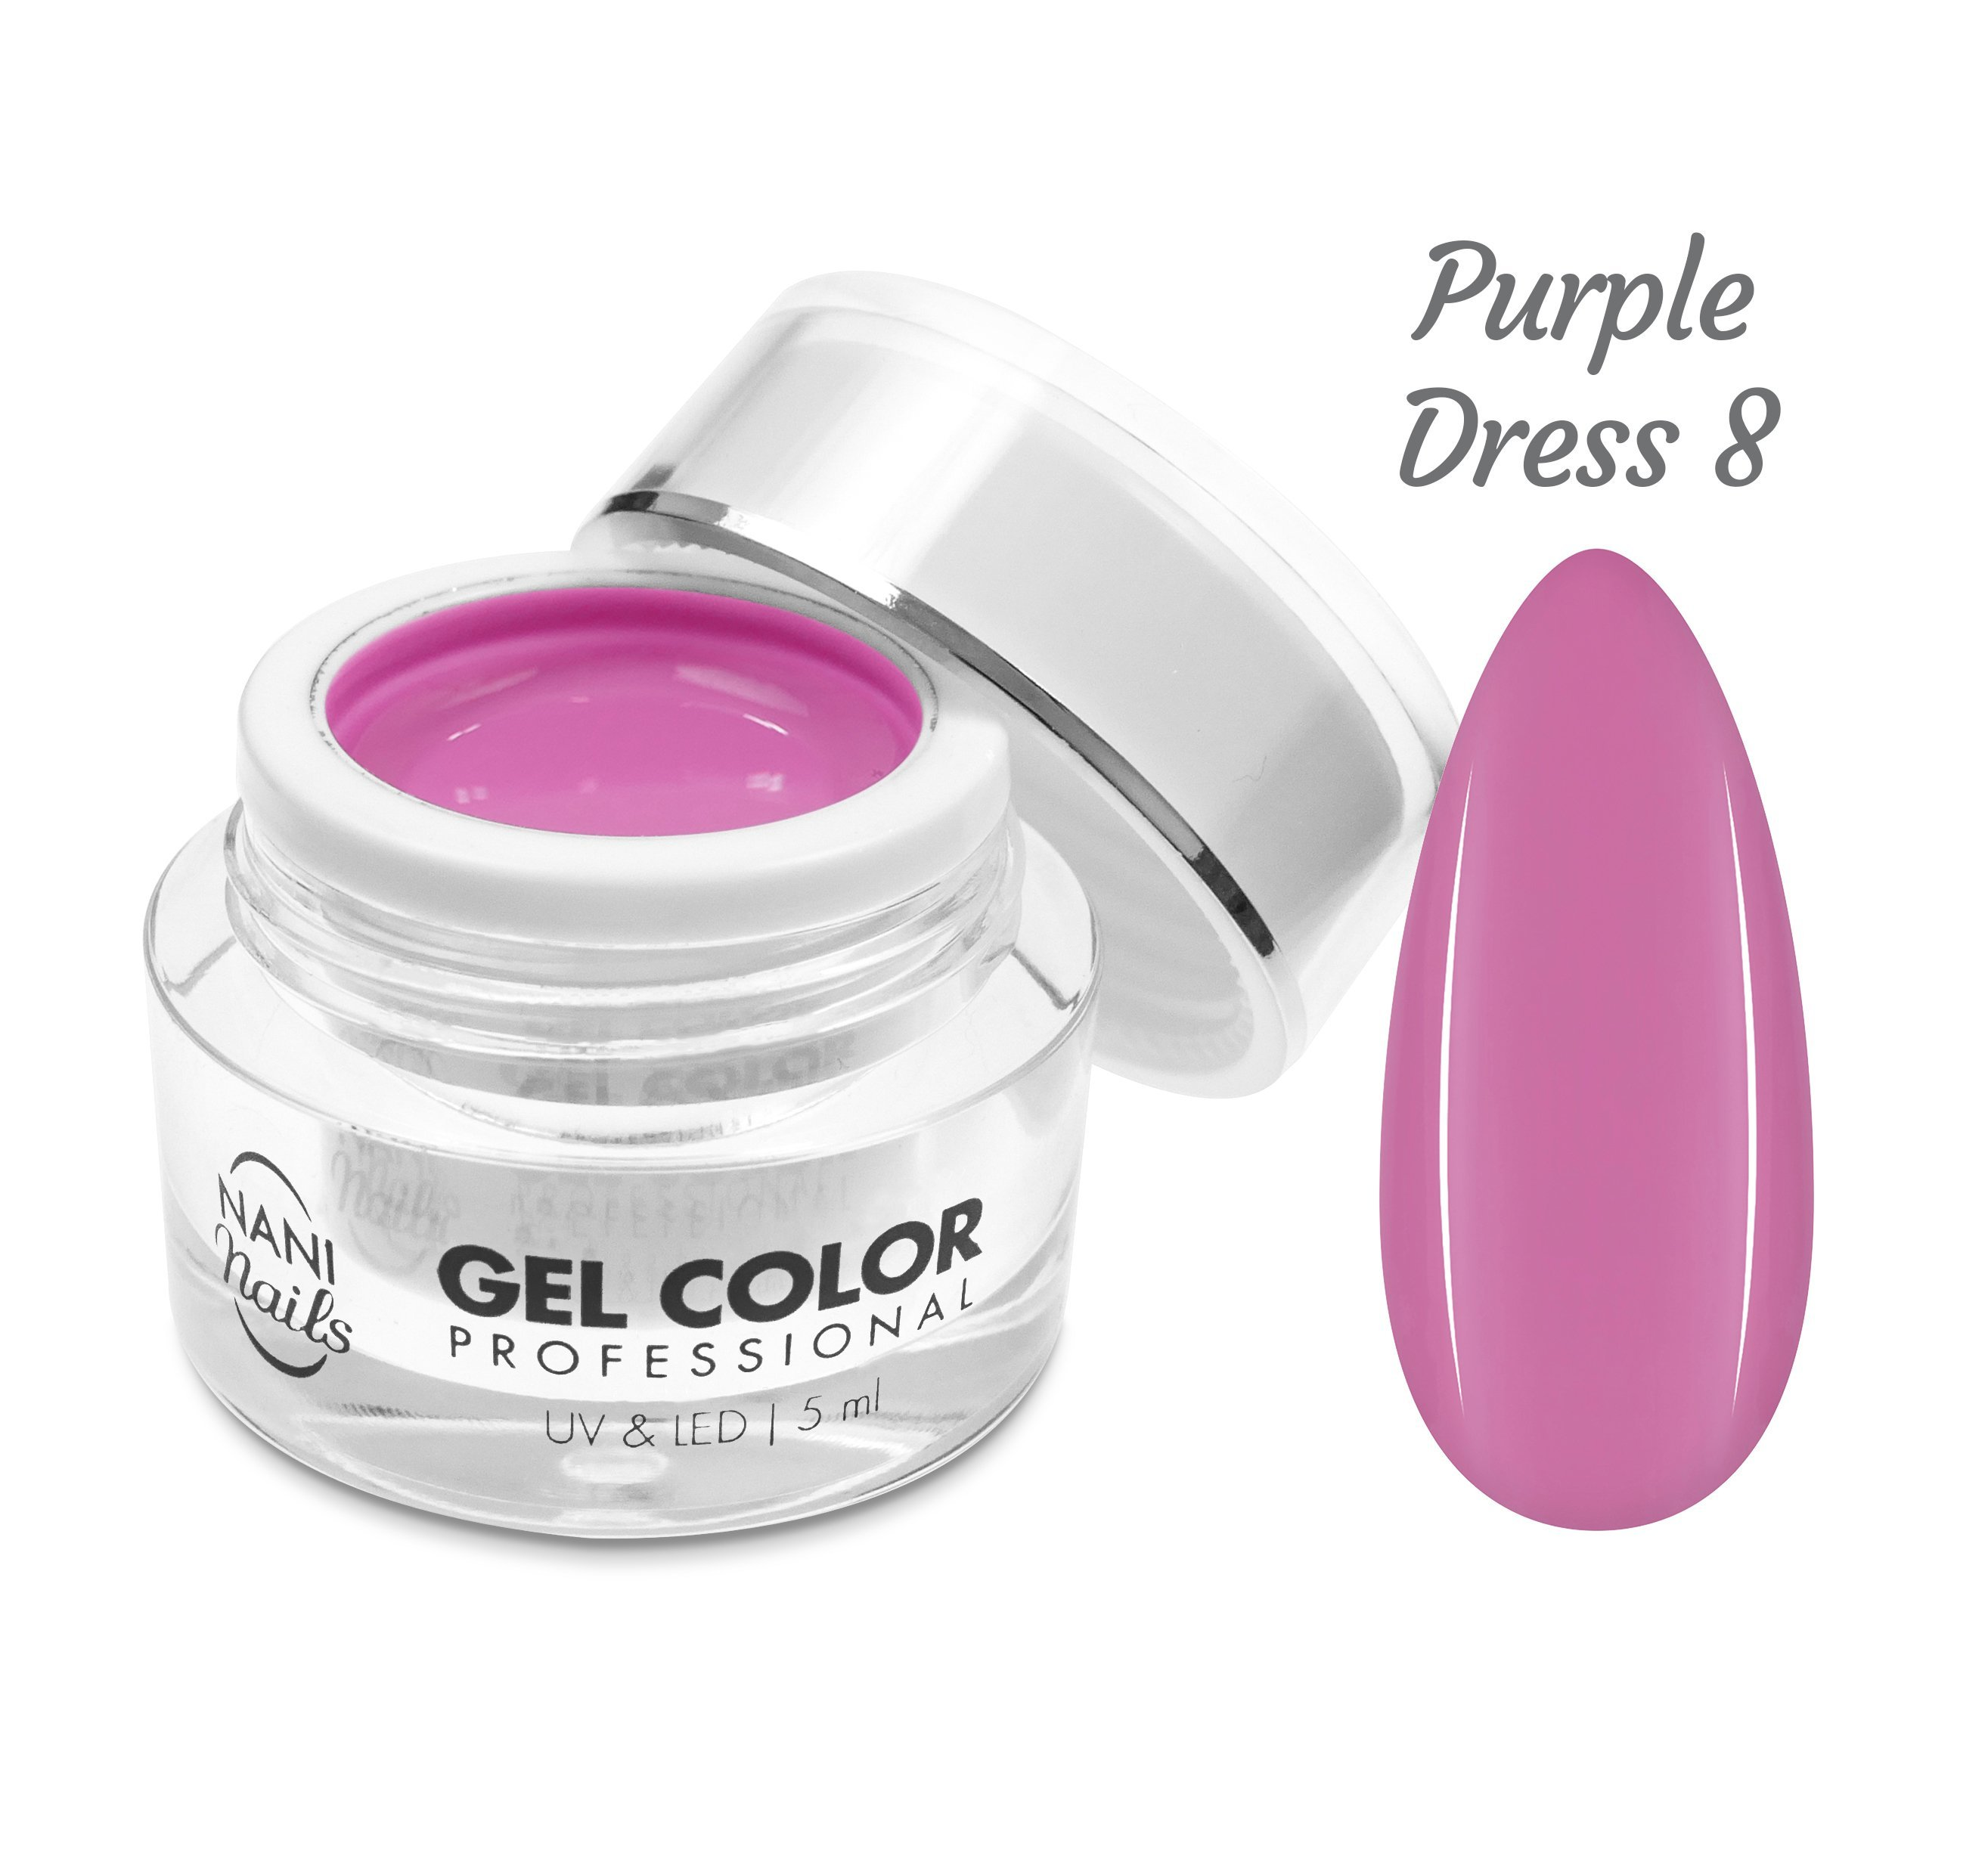 NANI UV/LED gél Professional 5 ml - Purple Dress